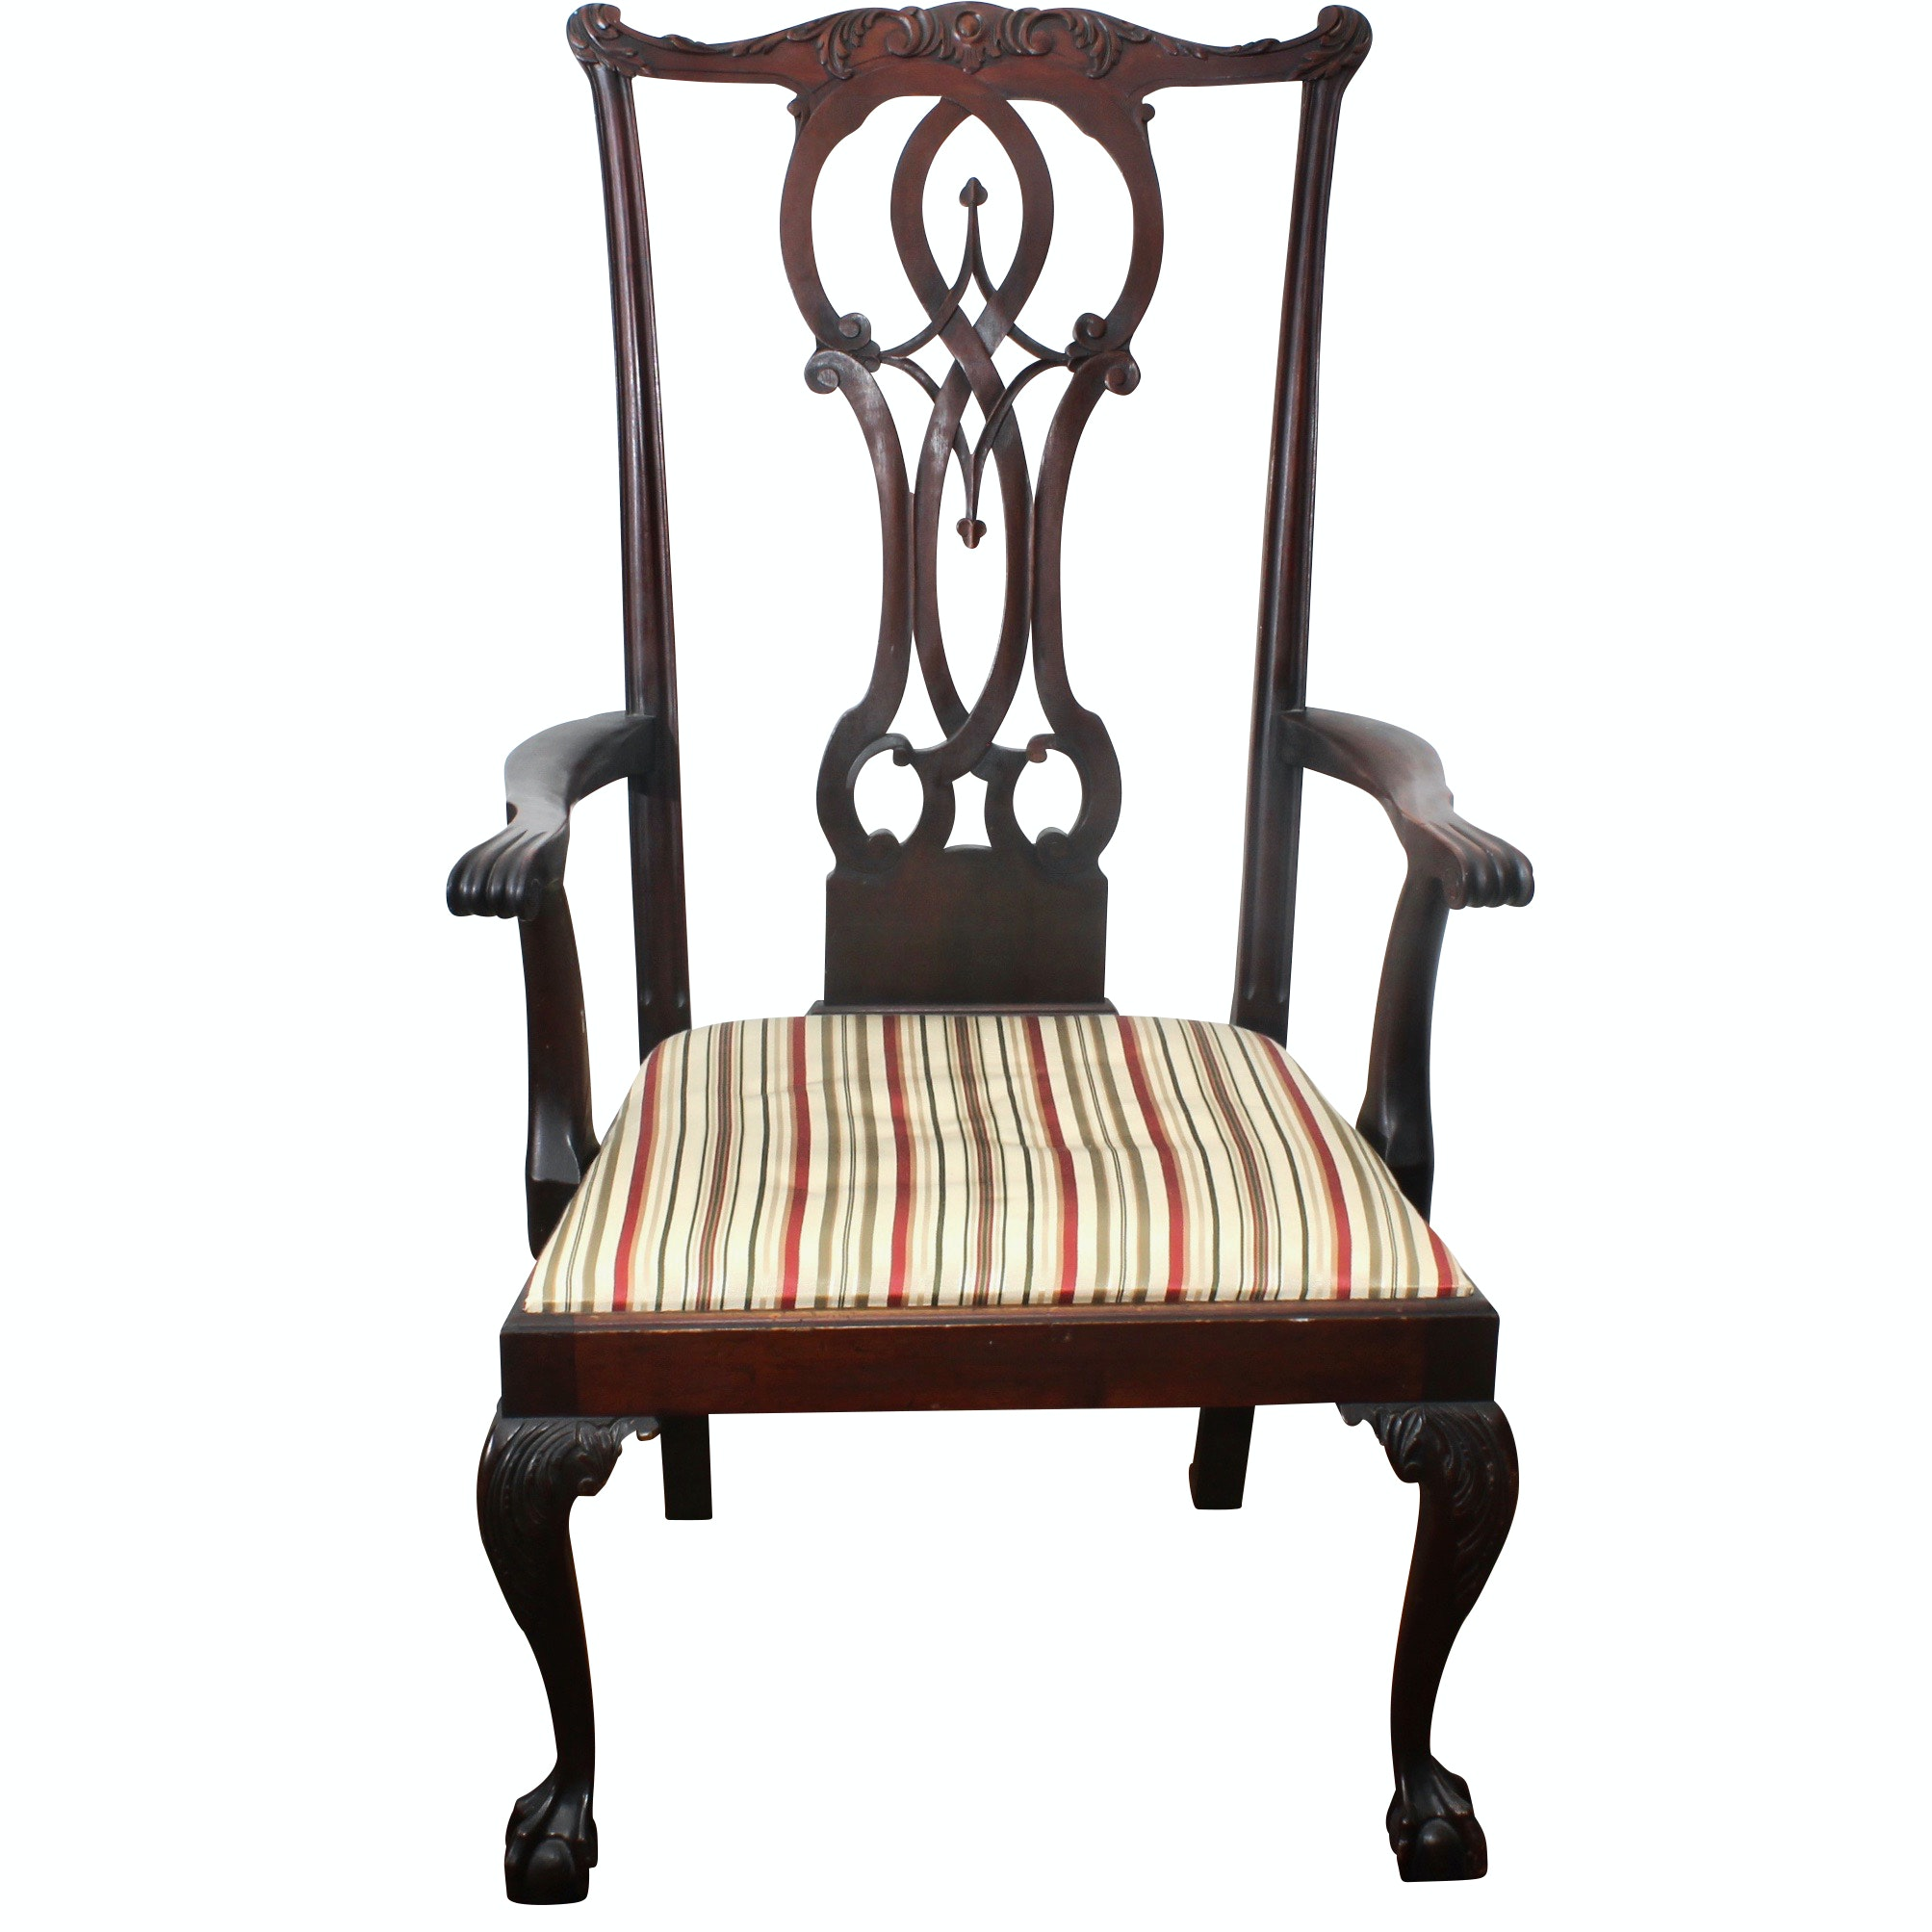 Chippendale Mahogany Ball-and-Claw Arm Chair, Antique